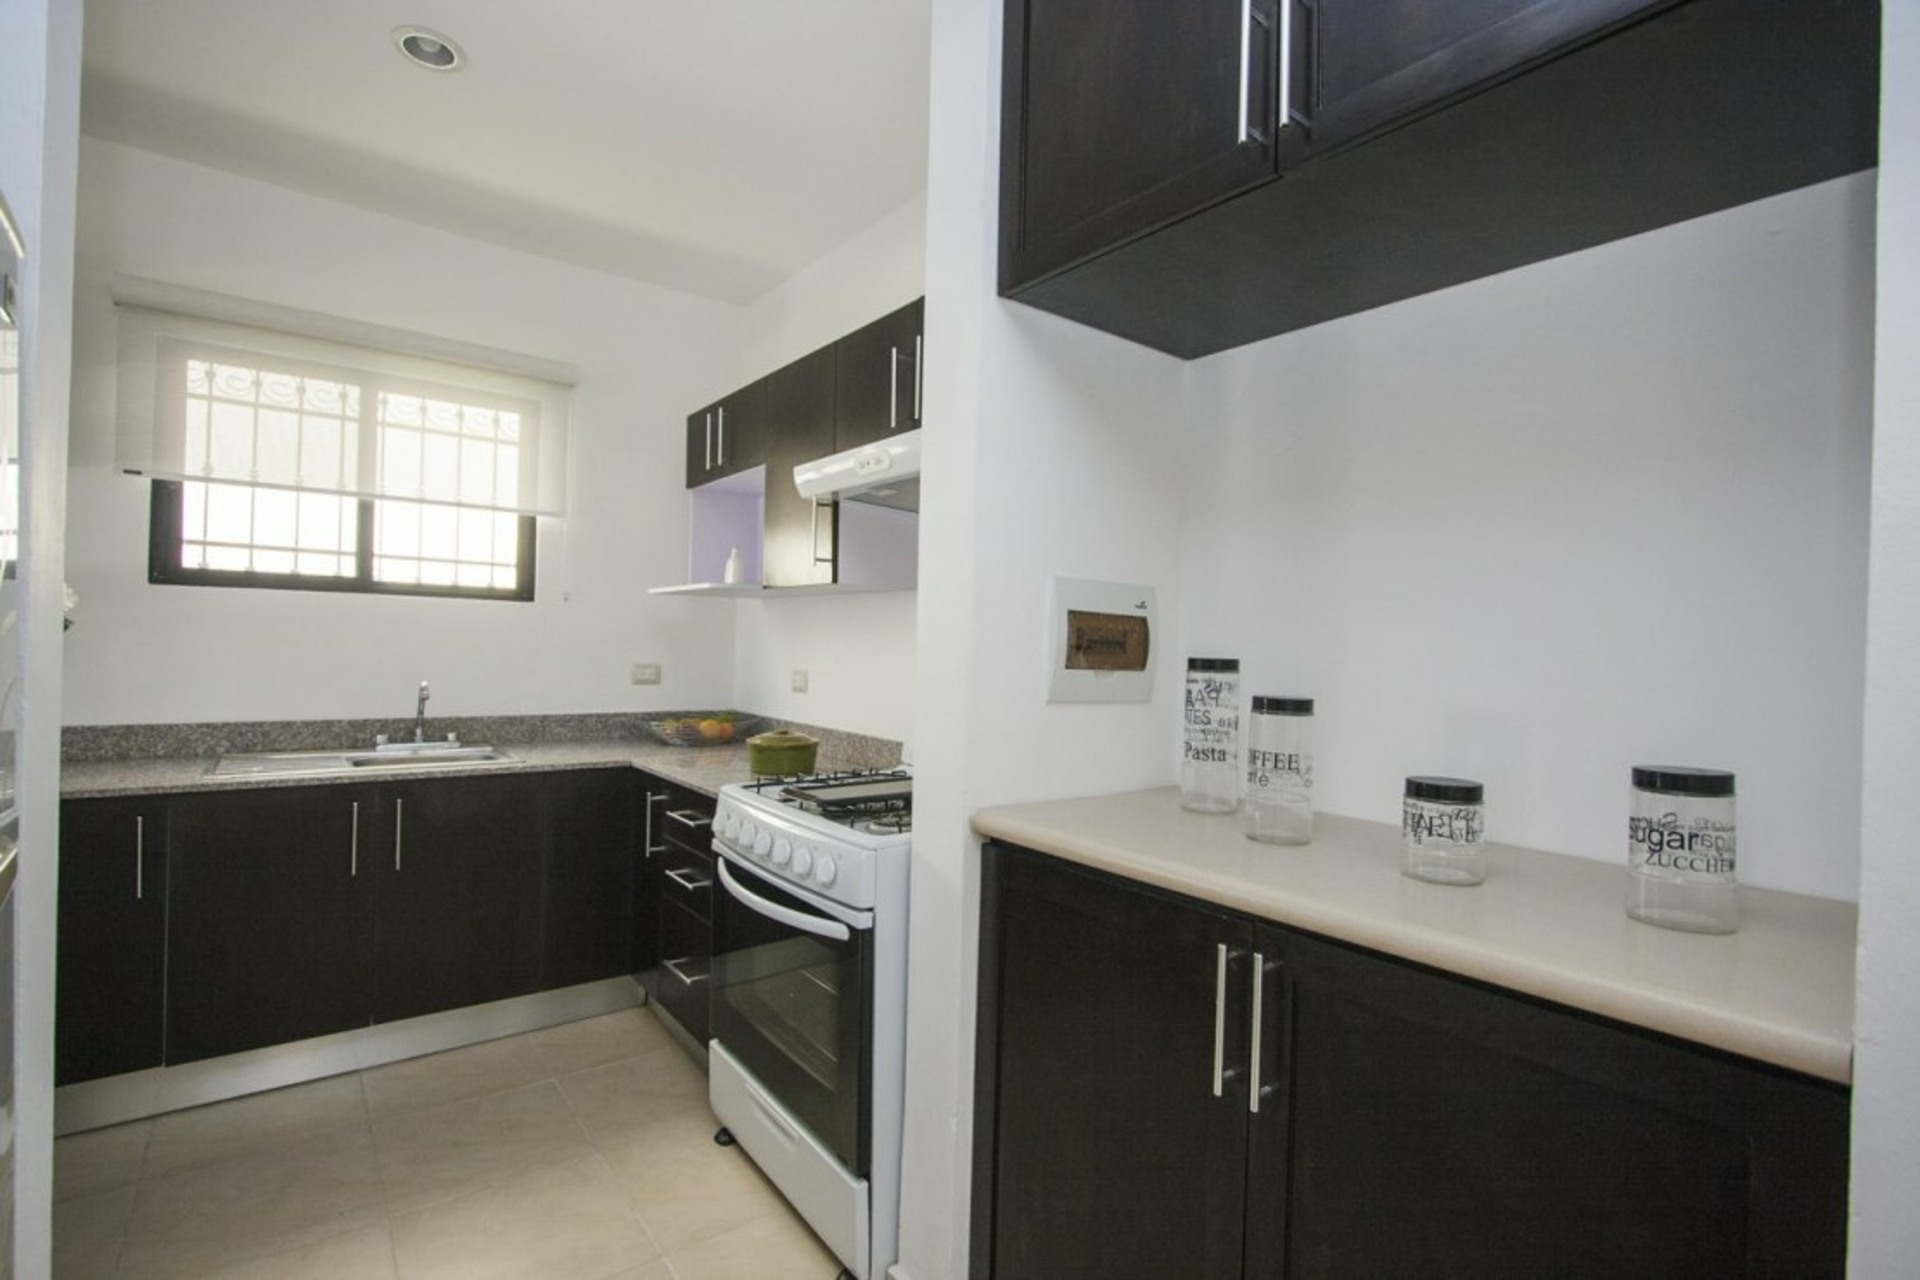 image 4 - House For sale Autres pays / Other countries - 8 rooms